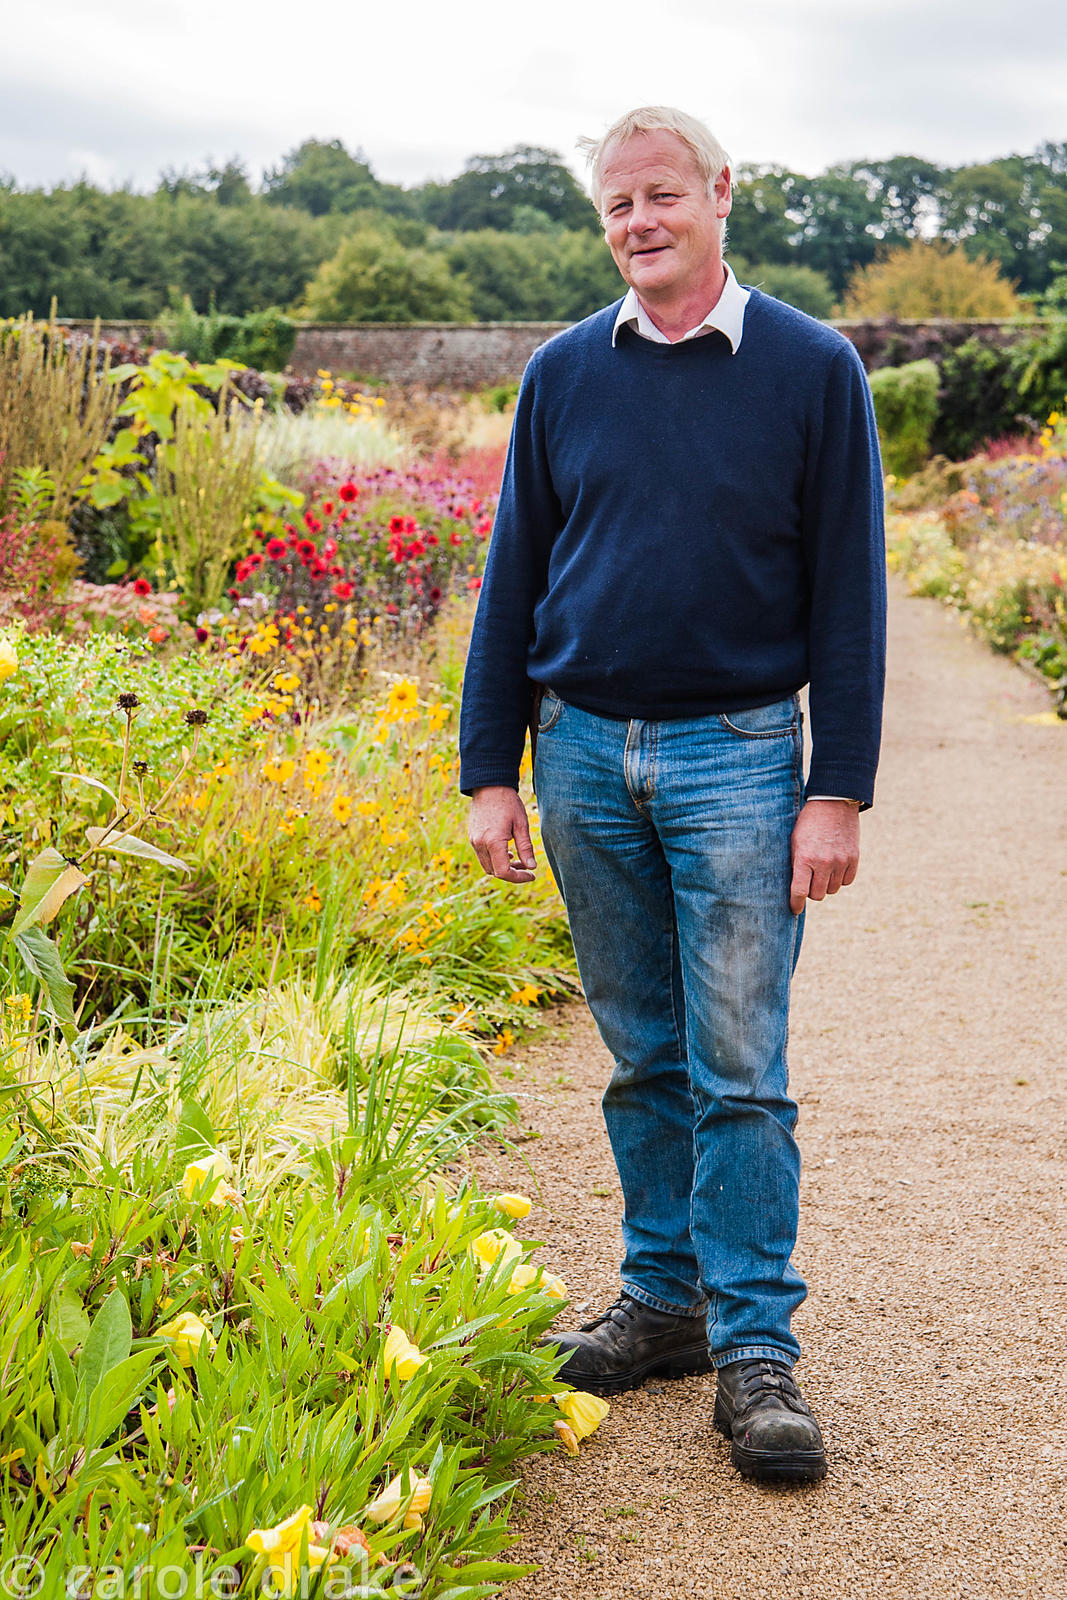 Norman Potter, head gardener, who previously had a career in the steel industry. Helmsley Walled Garden, Helmsley, York, Nort...